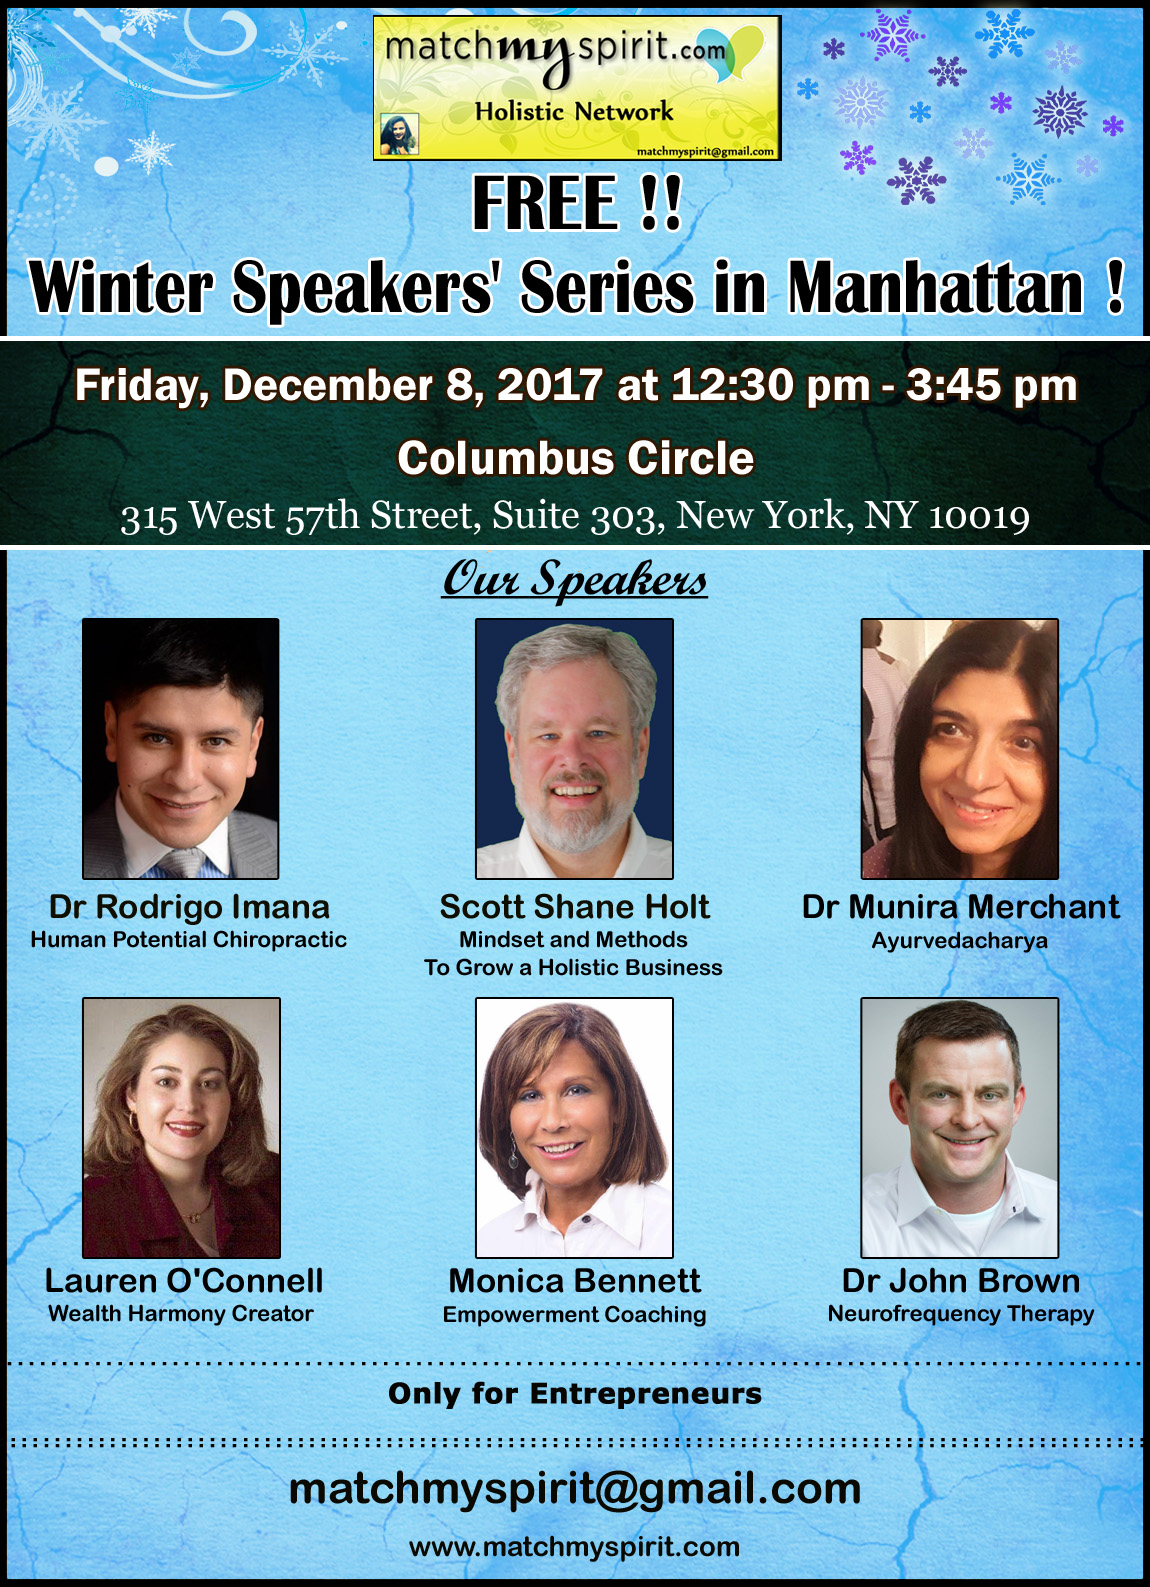 FREE!! Winter Speakers' Series in Manhattan !